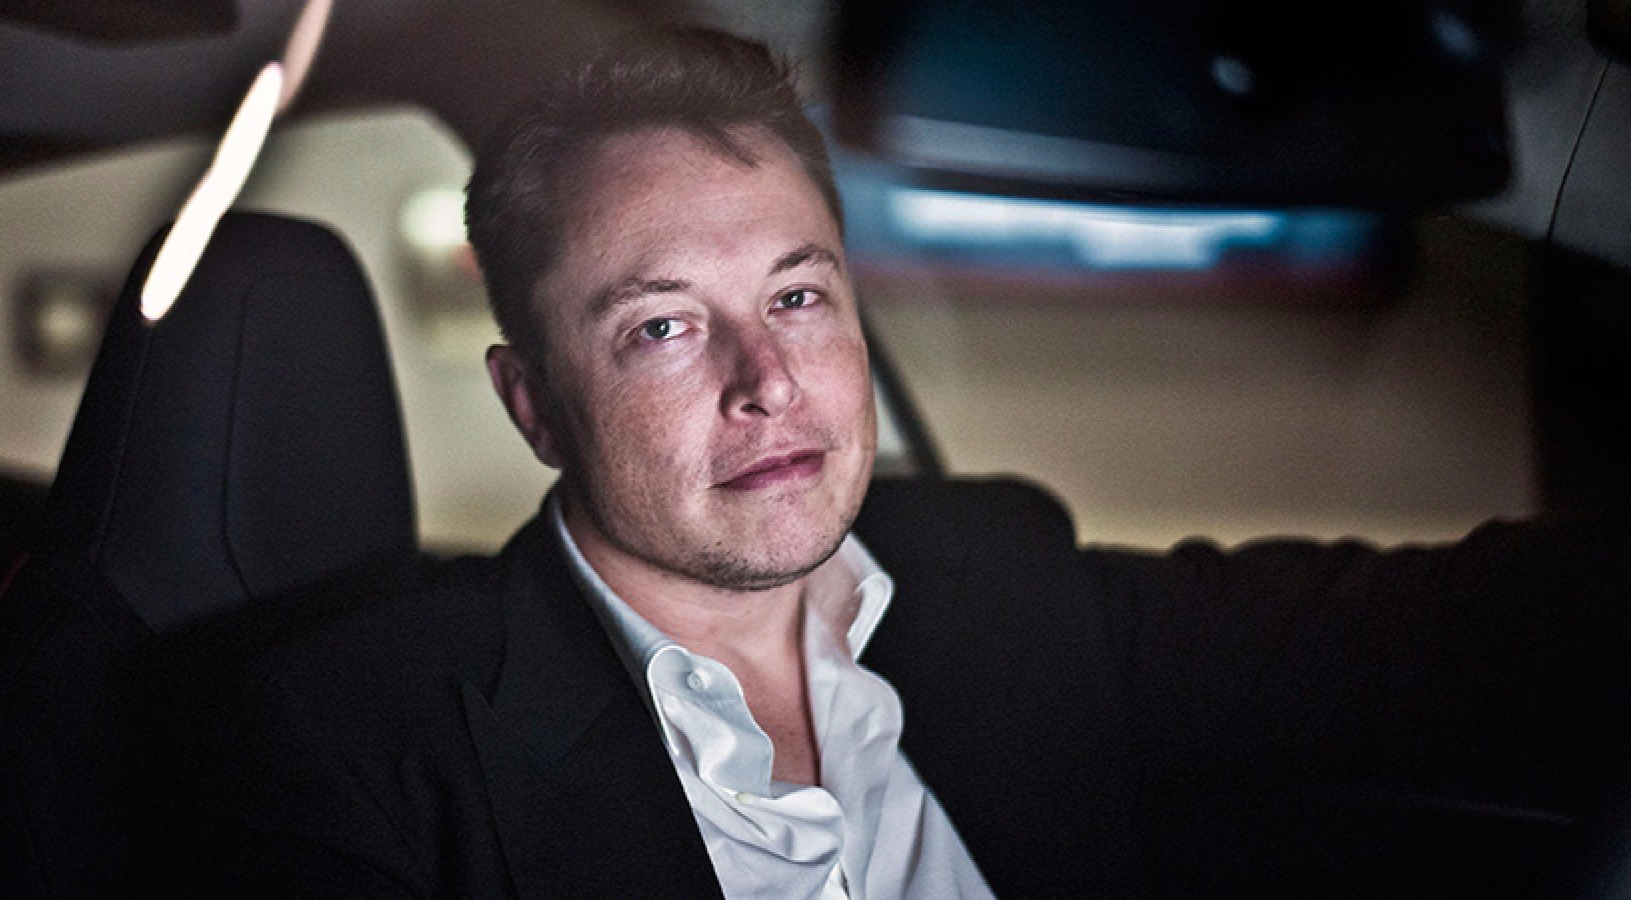 Elon Musk, the founder of AI. He seems focused on his wild plans to set AI free.